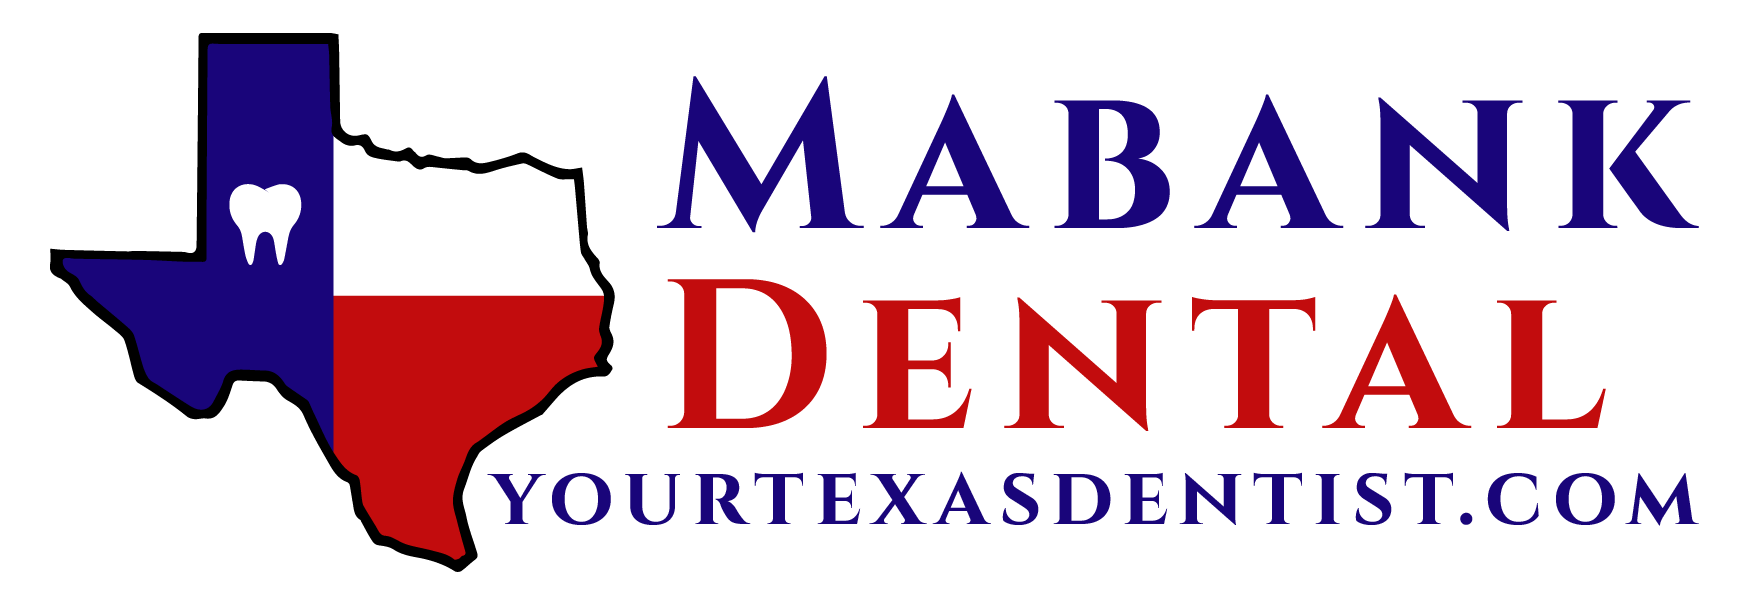 Mabank Dental Owner